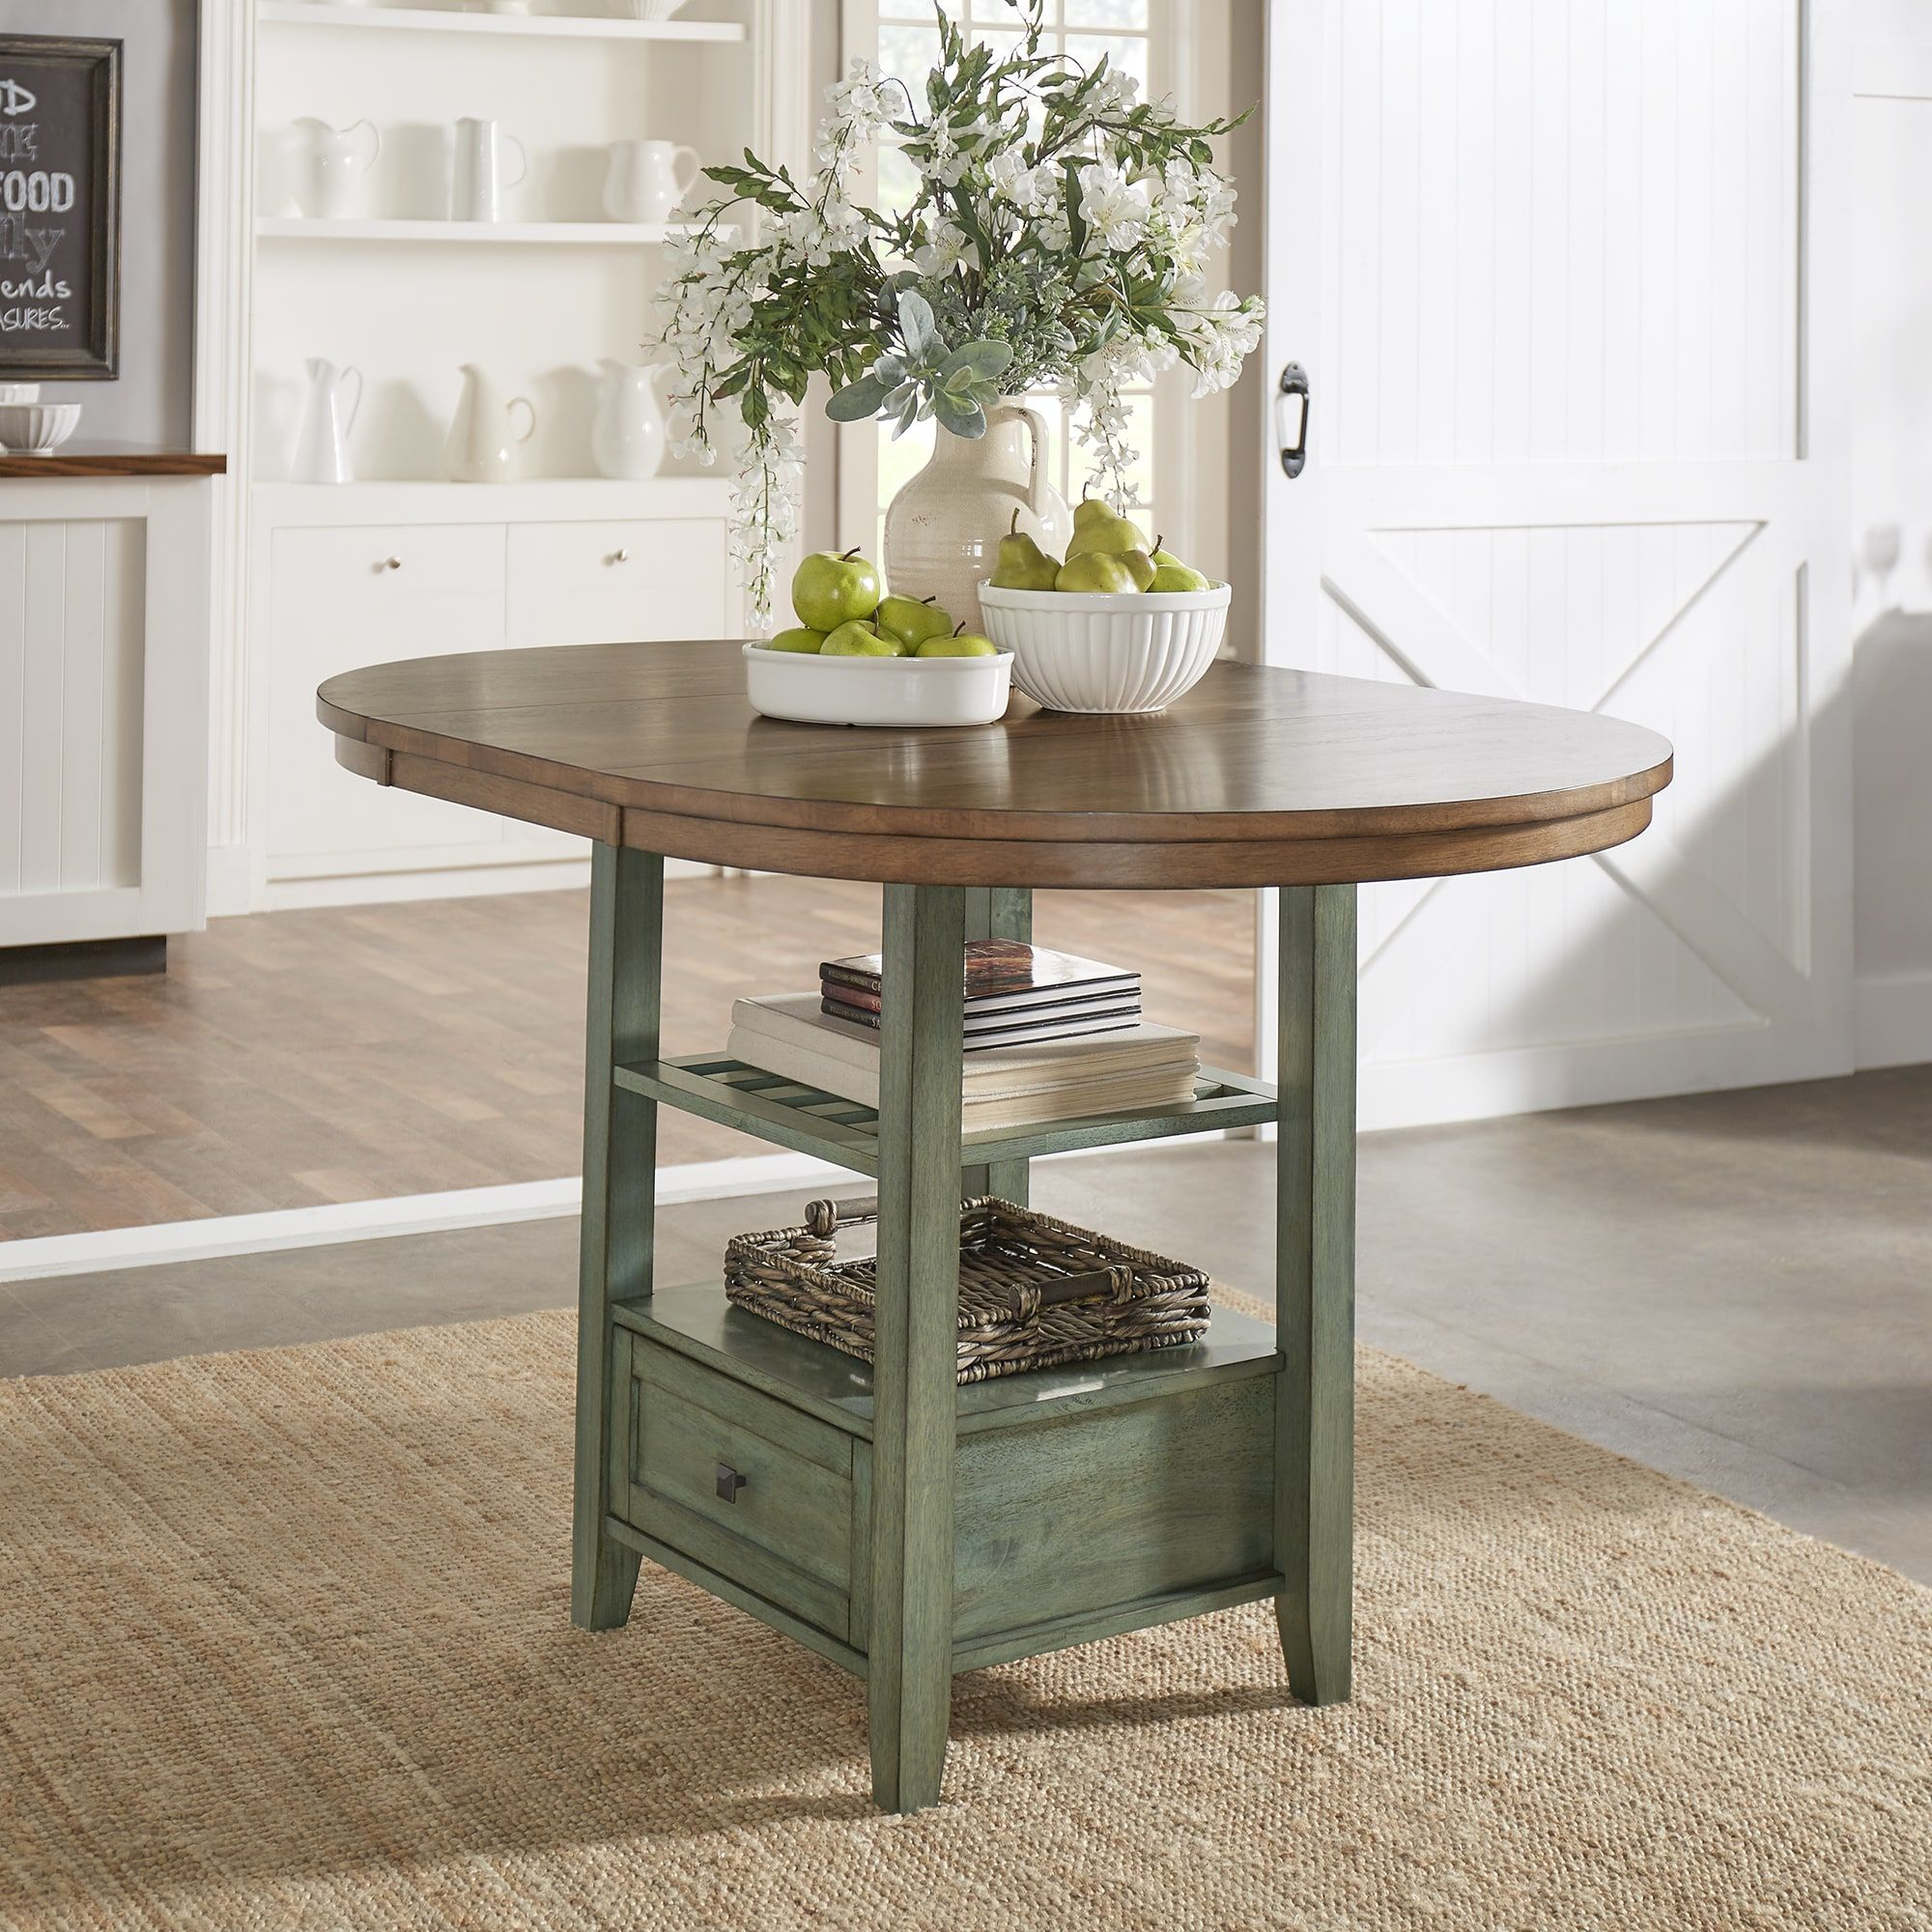 Eleanor Solid Wood Oval Extendable Counter Height Pedestal Regarding Recent Kirt Pedestal Dining Tables (View 13 of 15)